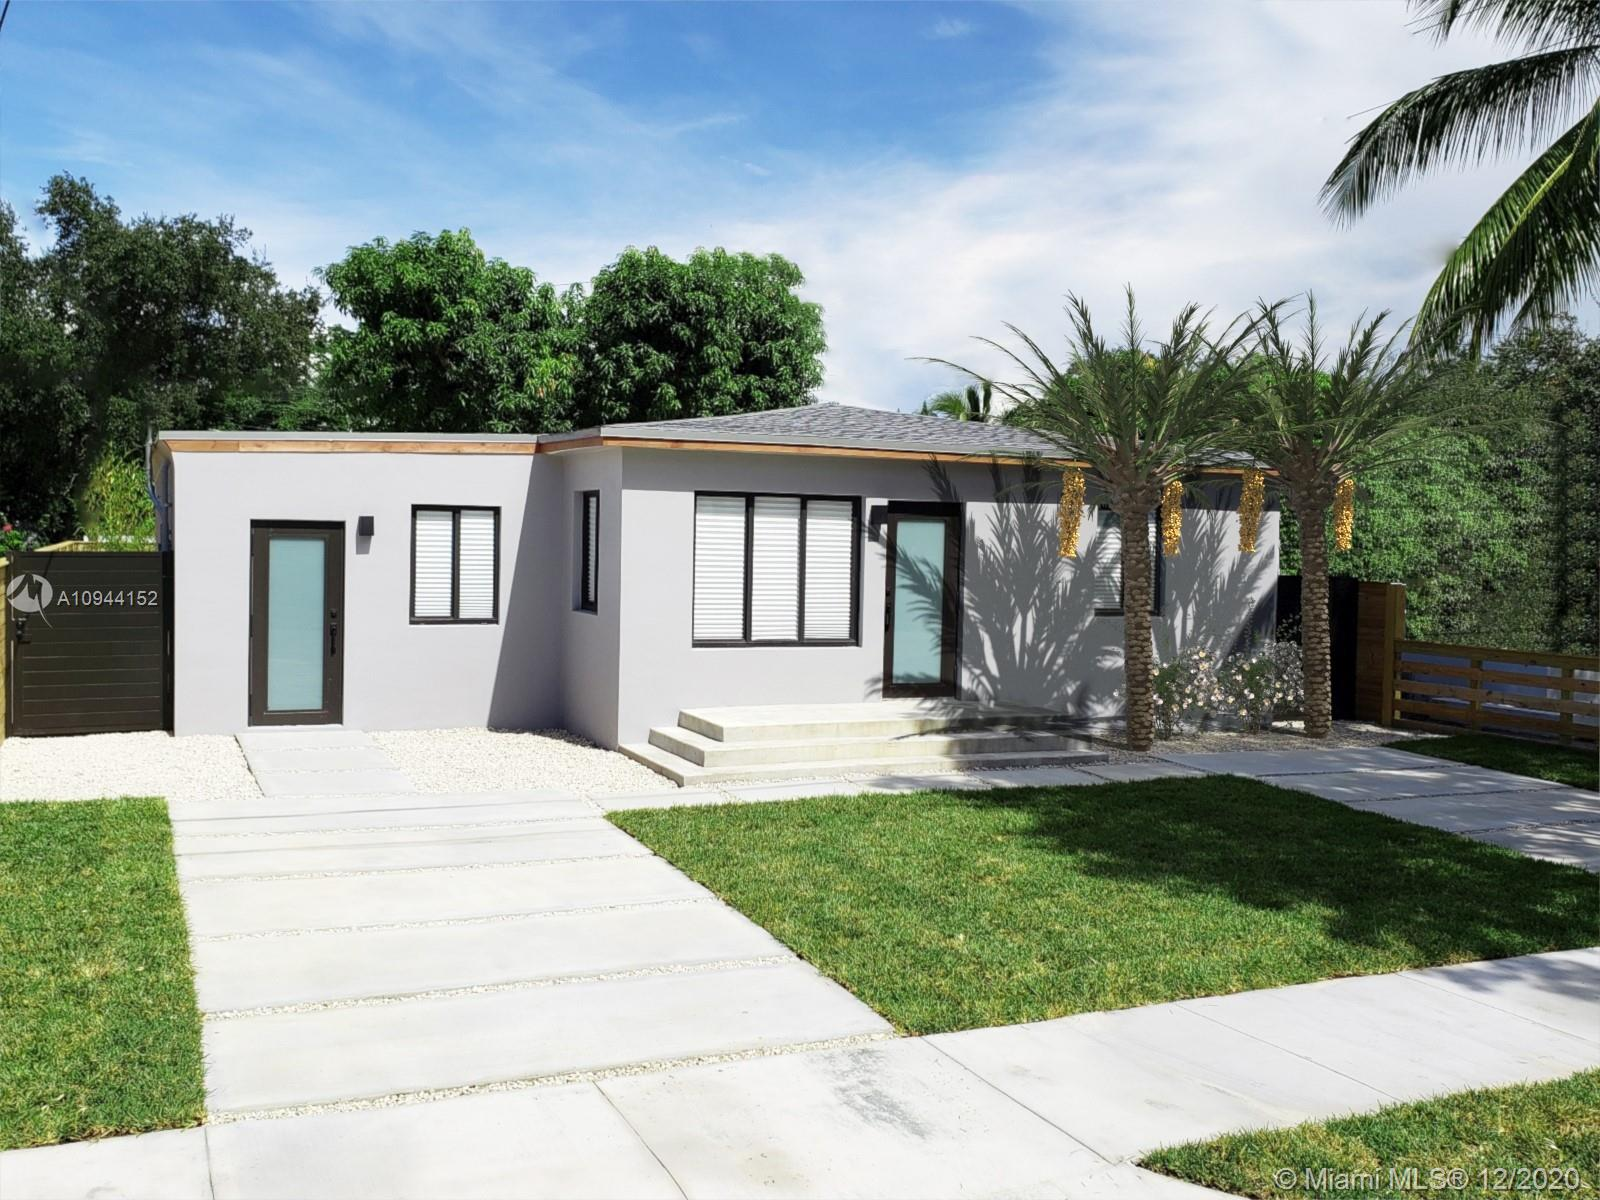 Details for 315 40th St, Miami, FL 33127